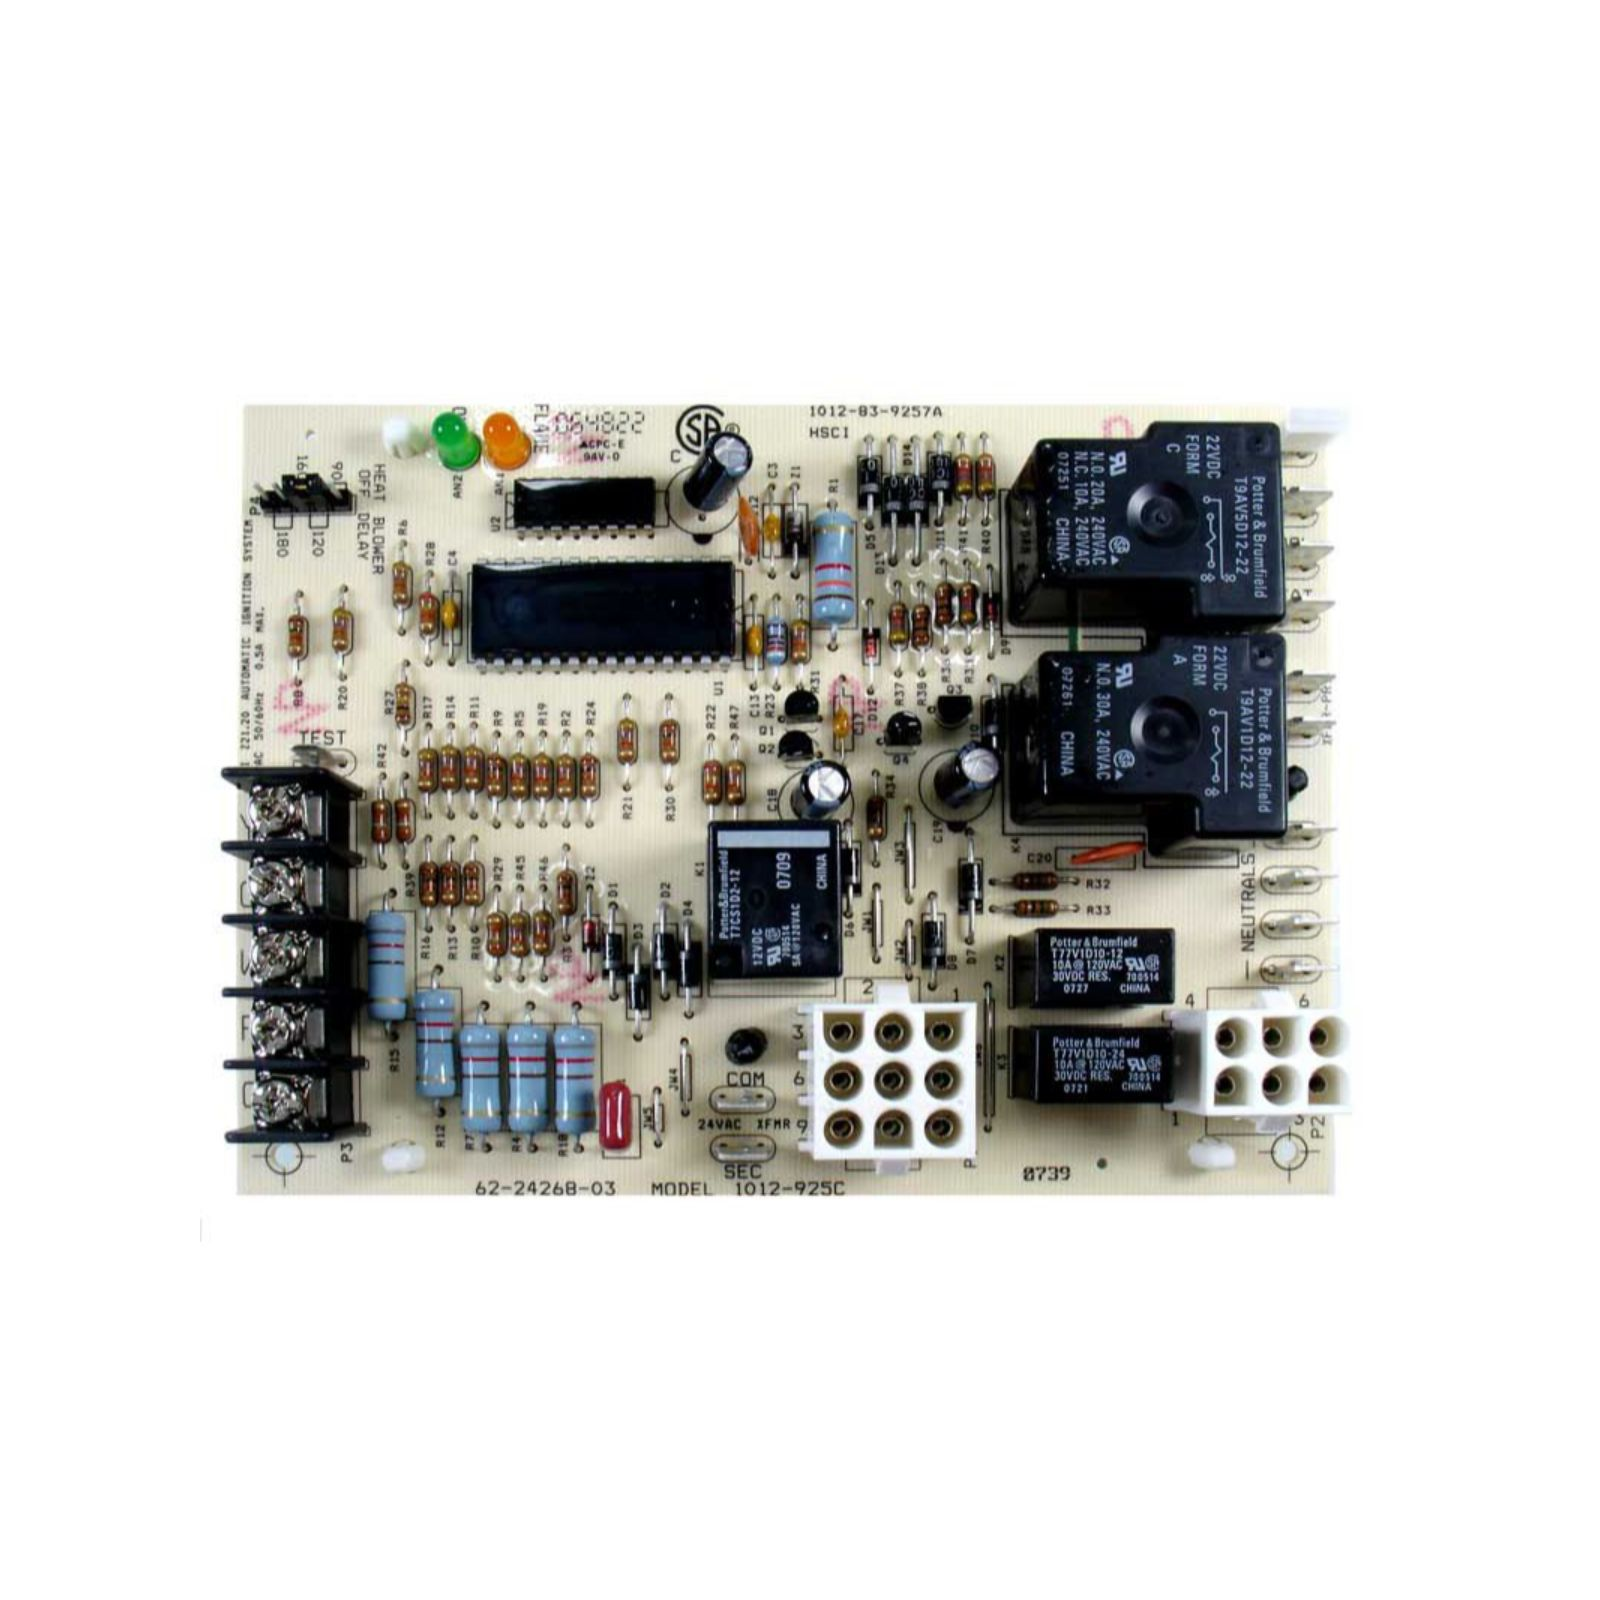 UTEC 62-24268-03 - Integrated Furnace Control Board (IFC)